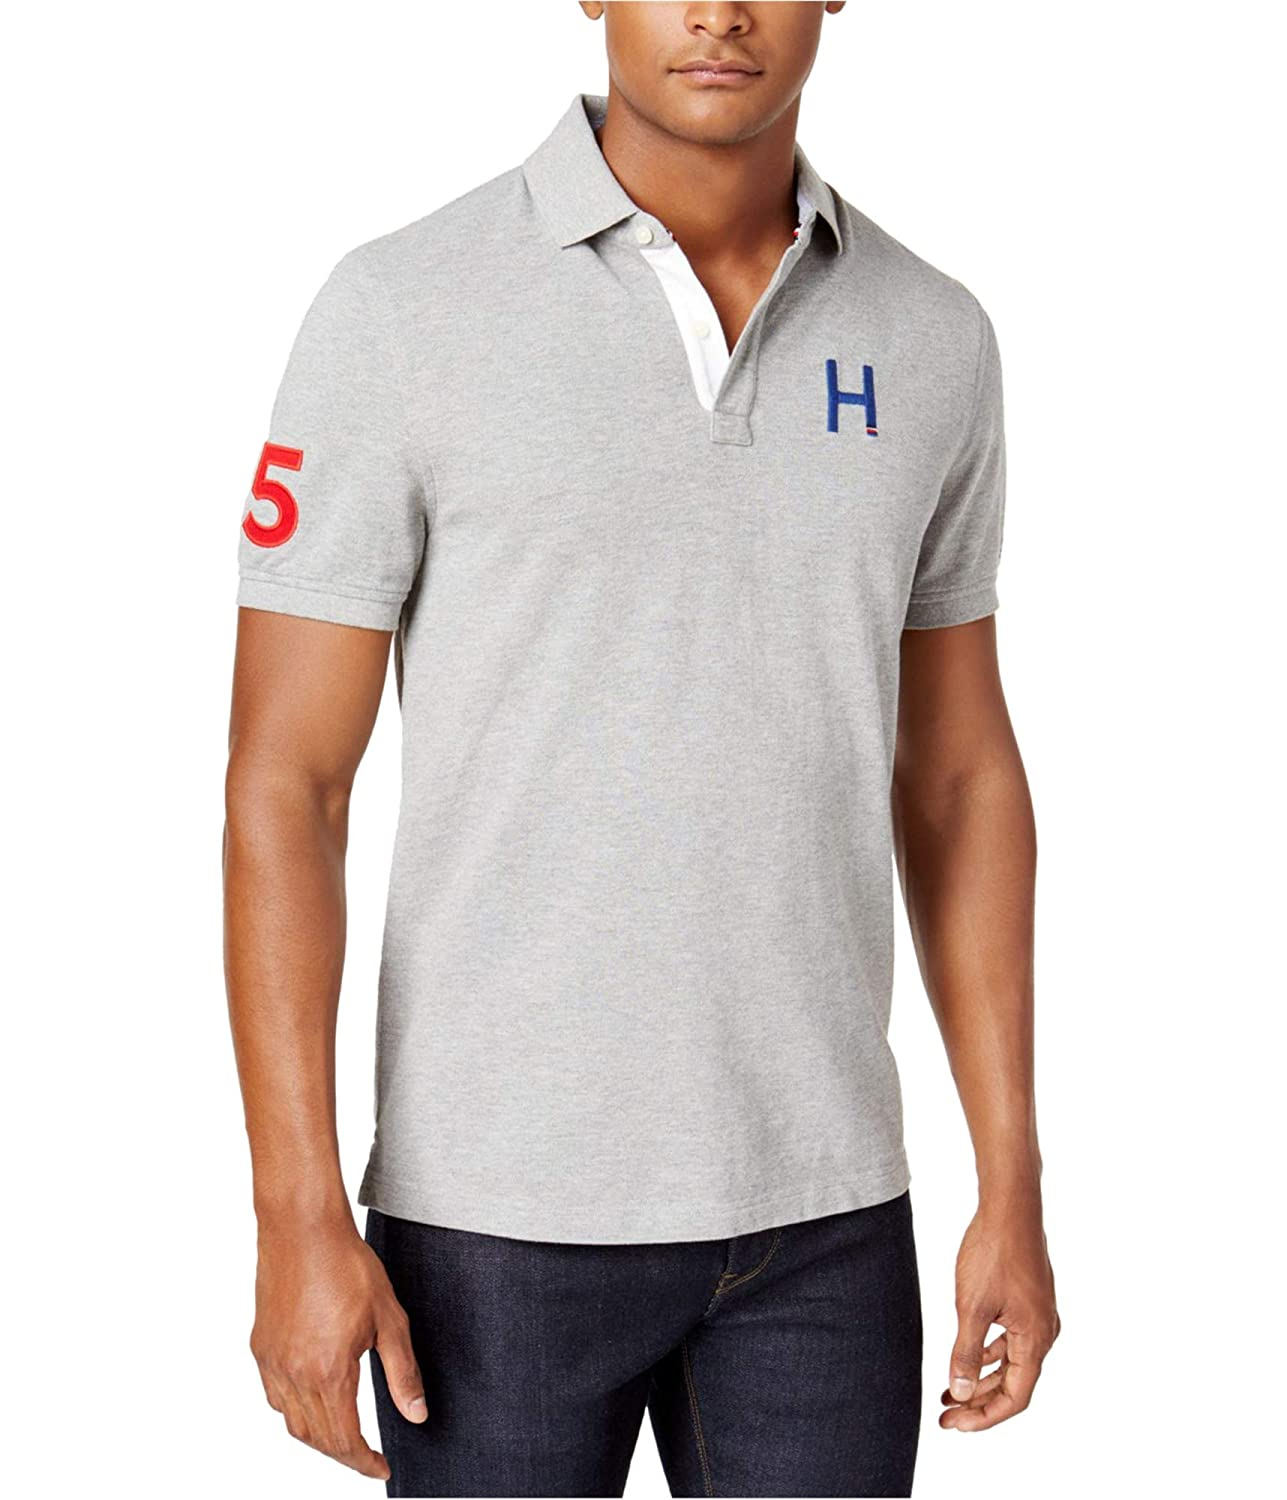 Tommy Hilfiger Mens Sporty Embroidered Rugby Polo Shirt Grey Xs At